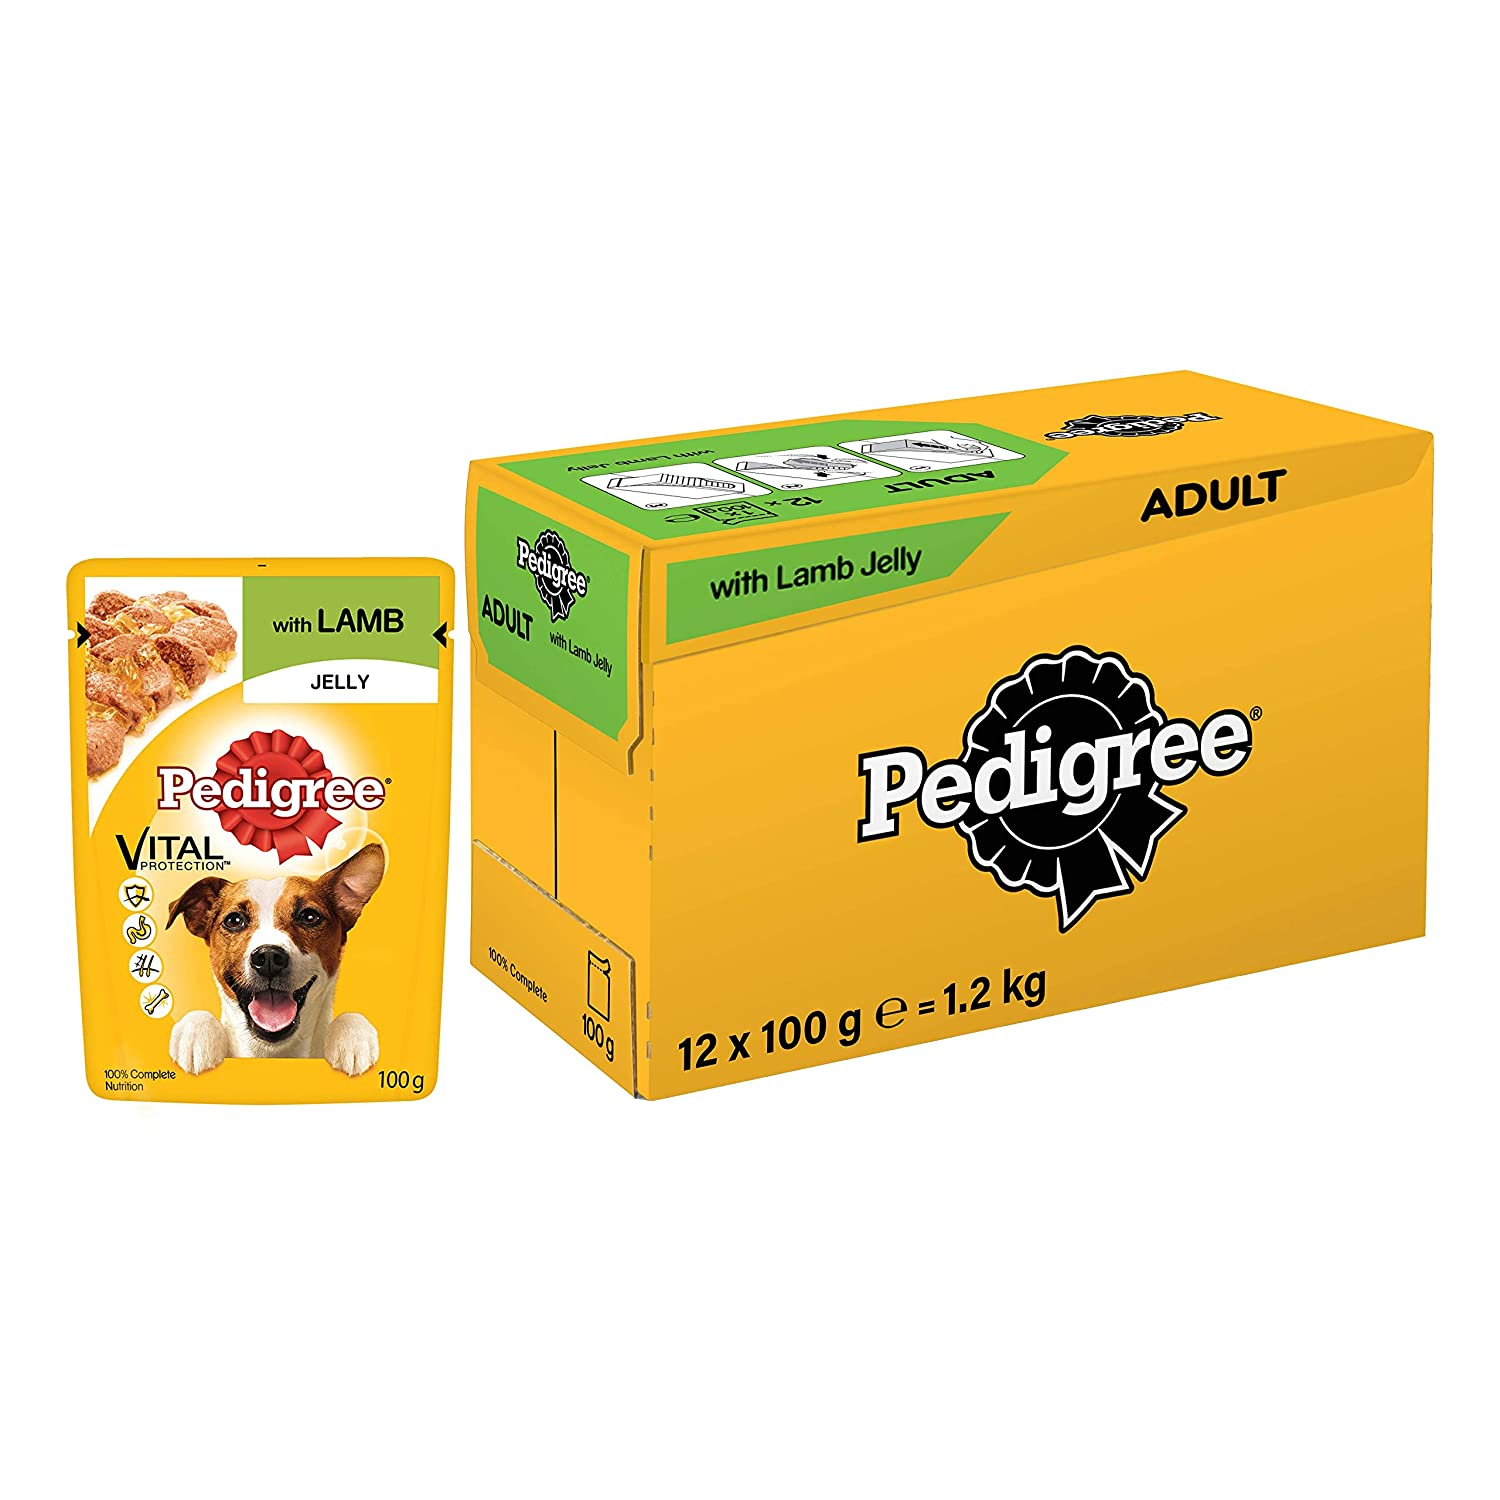 Pedigree Vital Protection Adult Wet Dog Food, Lamb in Jelly, 30 Pouches (30x100g) - Pet Chum